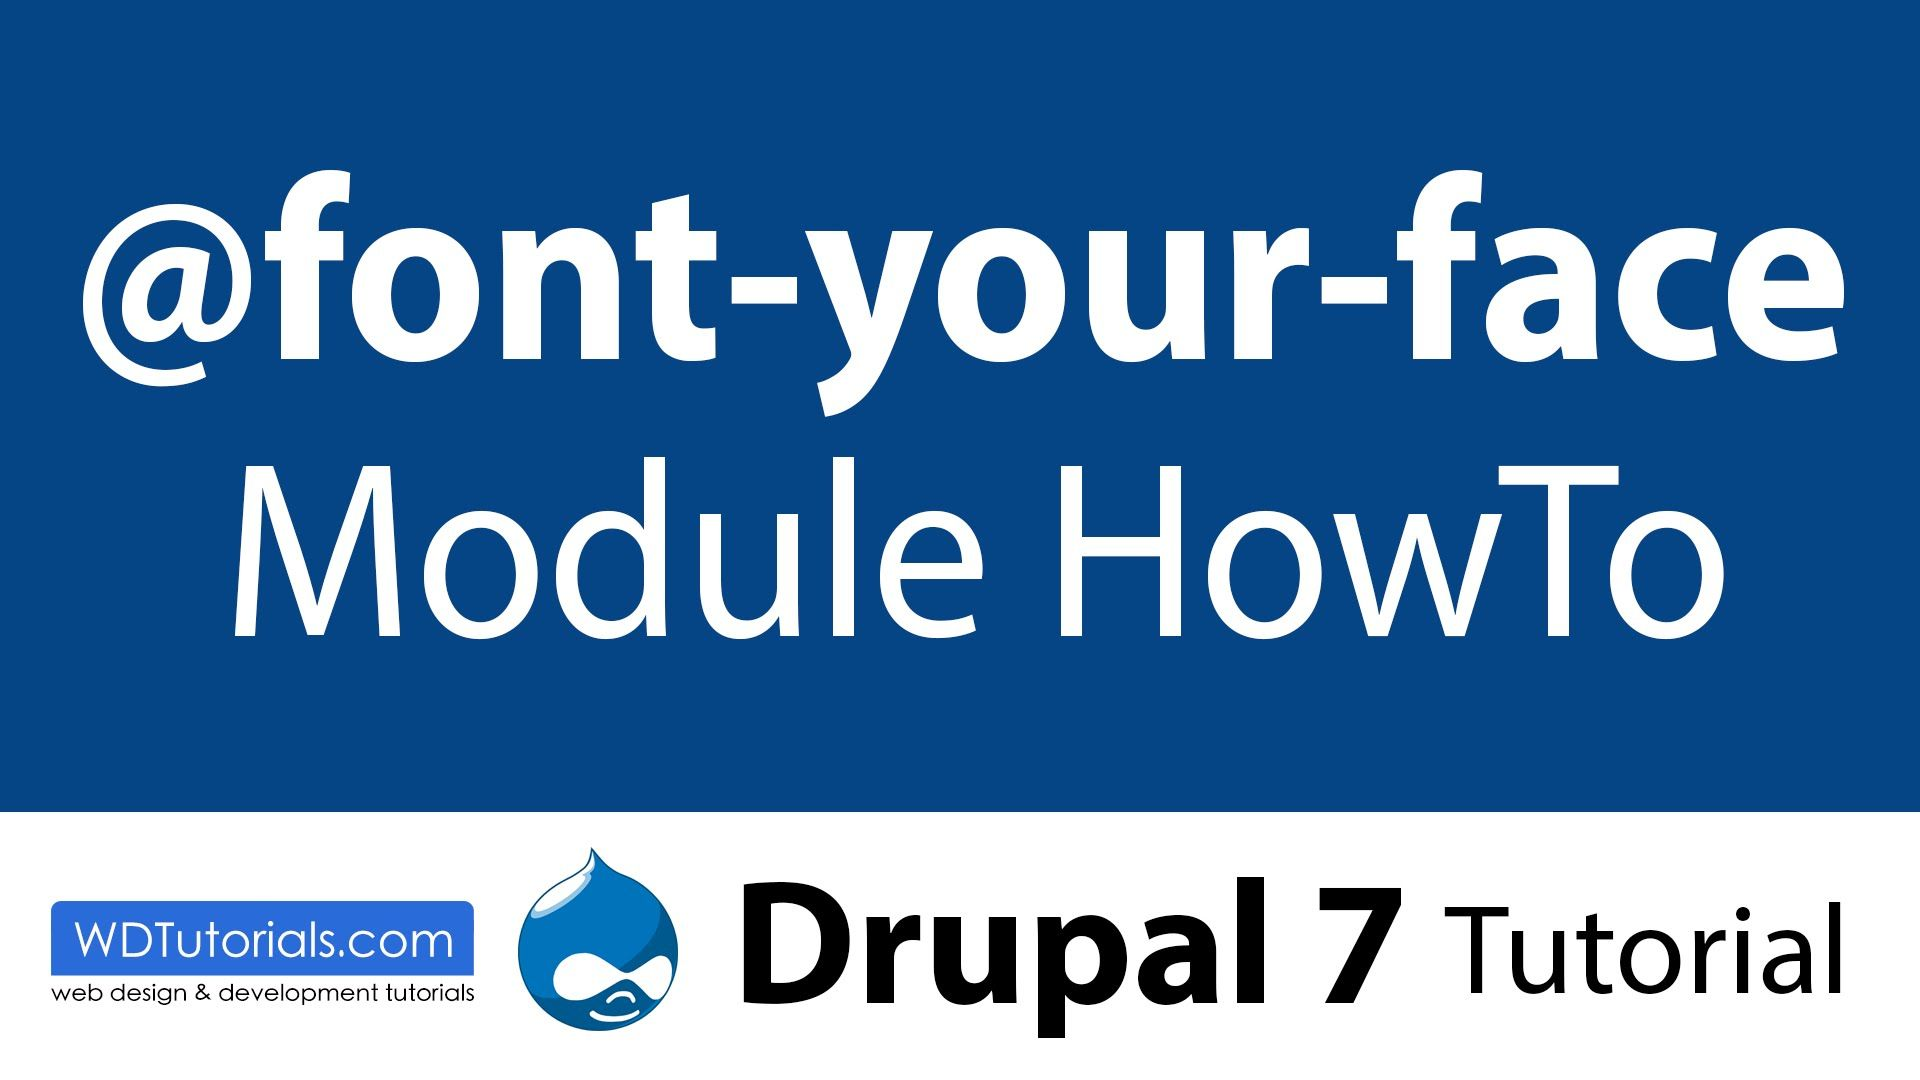 Font your face module drupal tutorial bootstrap pinterest font your face module drupal tutorial baditri Images